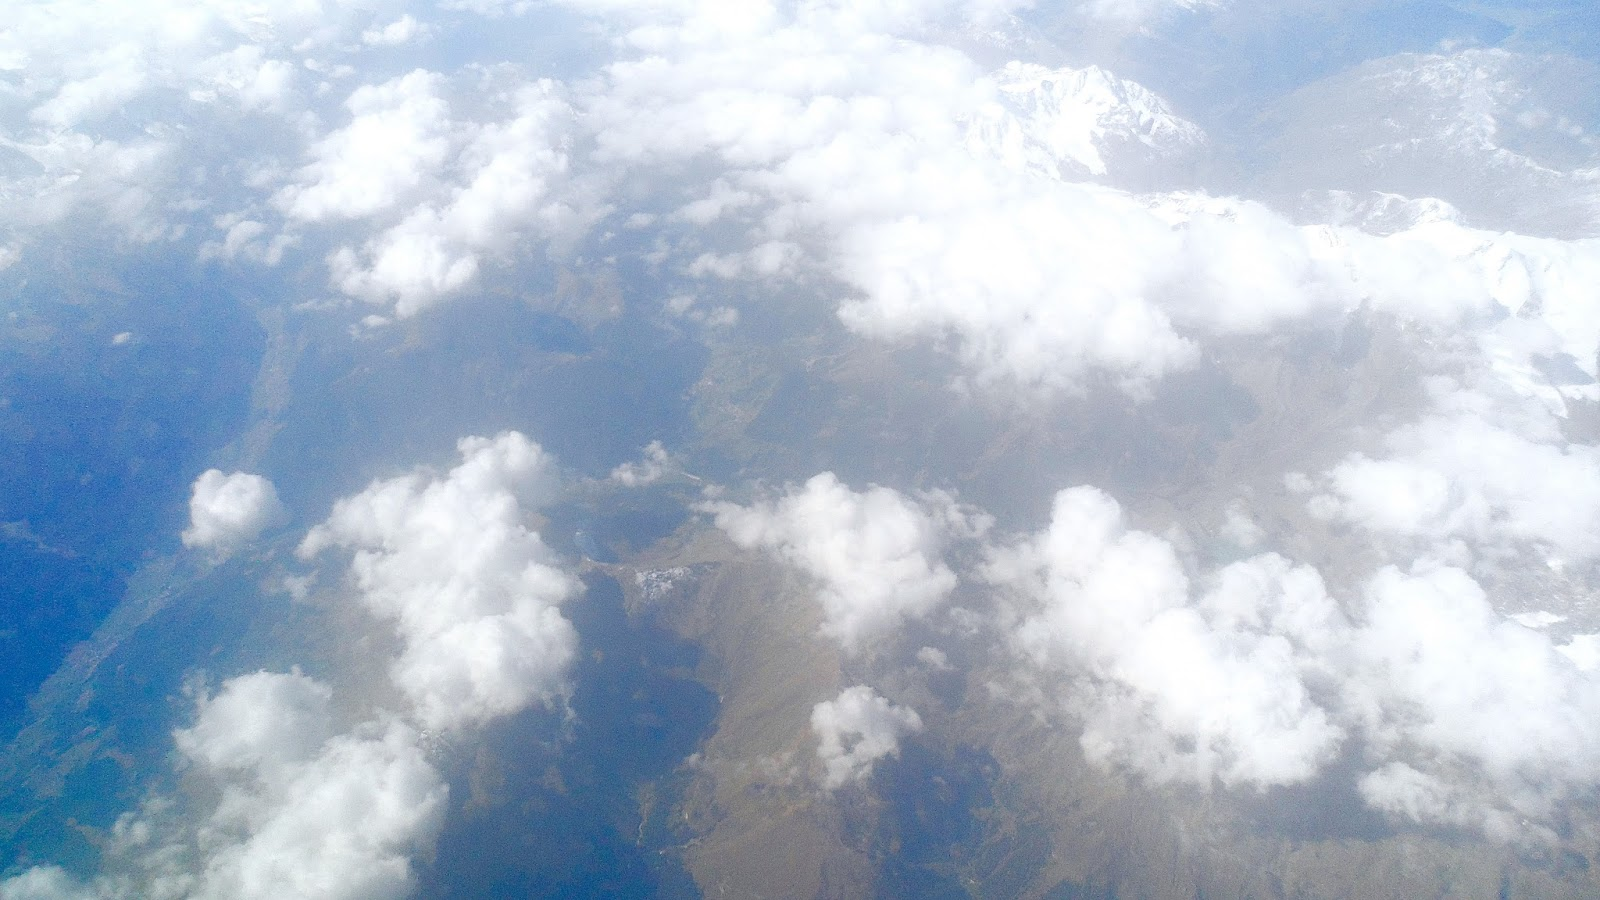 A view from a plane during a flight to Rome